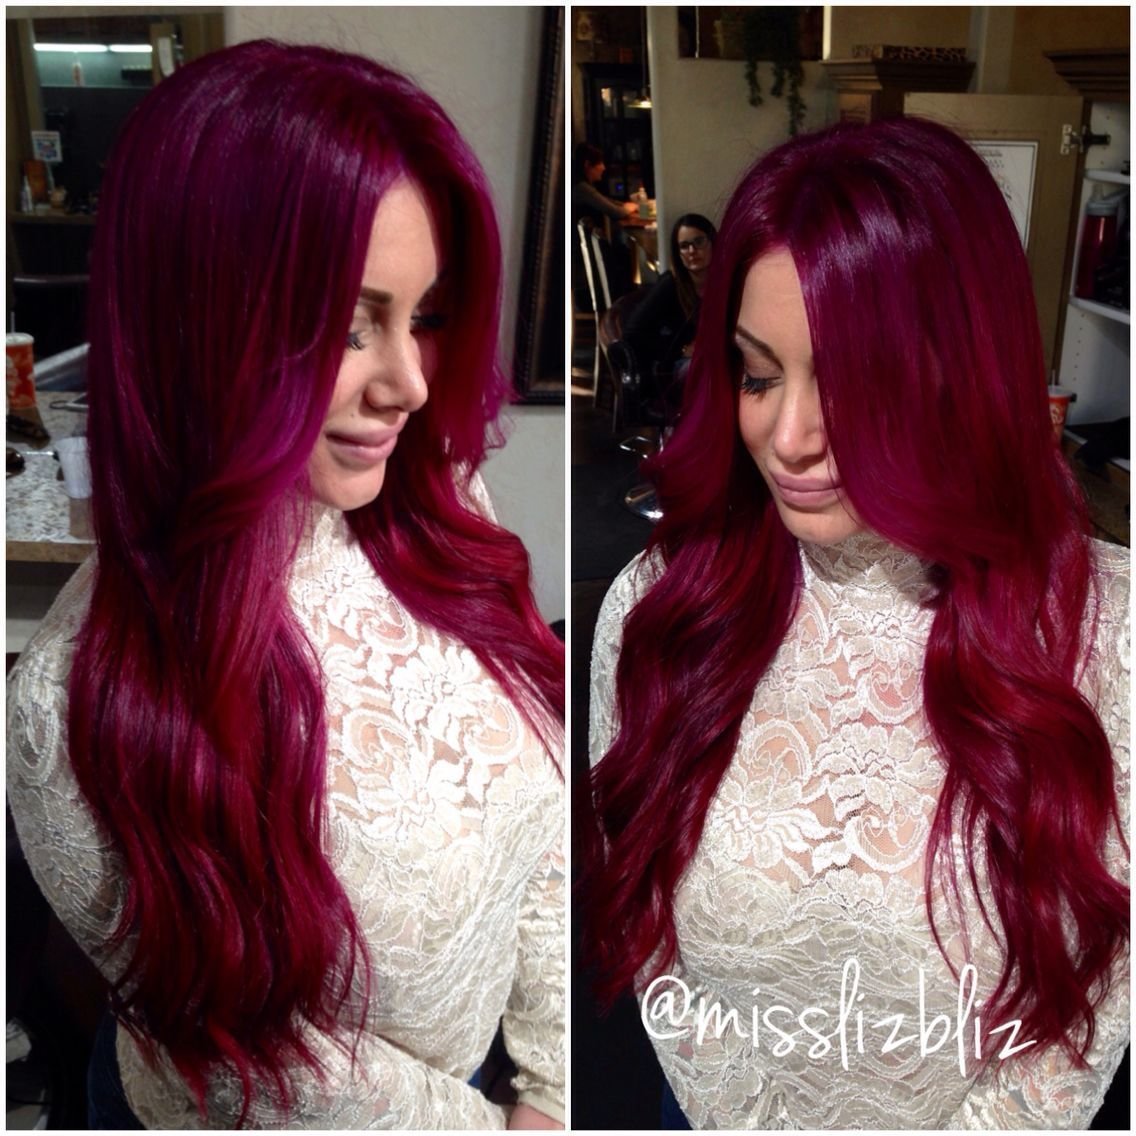 The Best Raspberry Lush Crush In 2019 Hair Pravana Hair Color Pictures